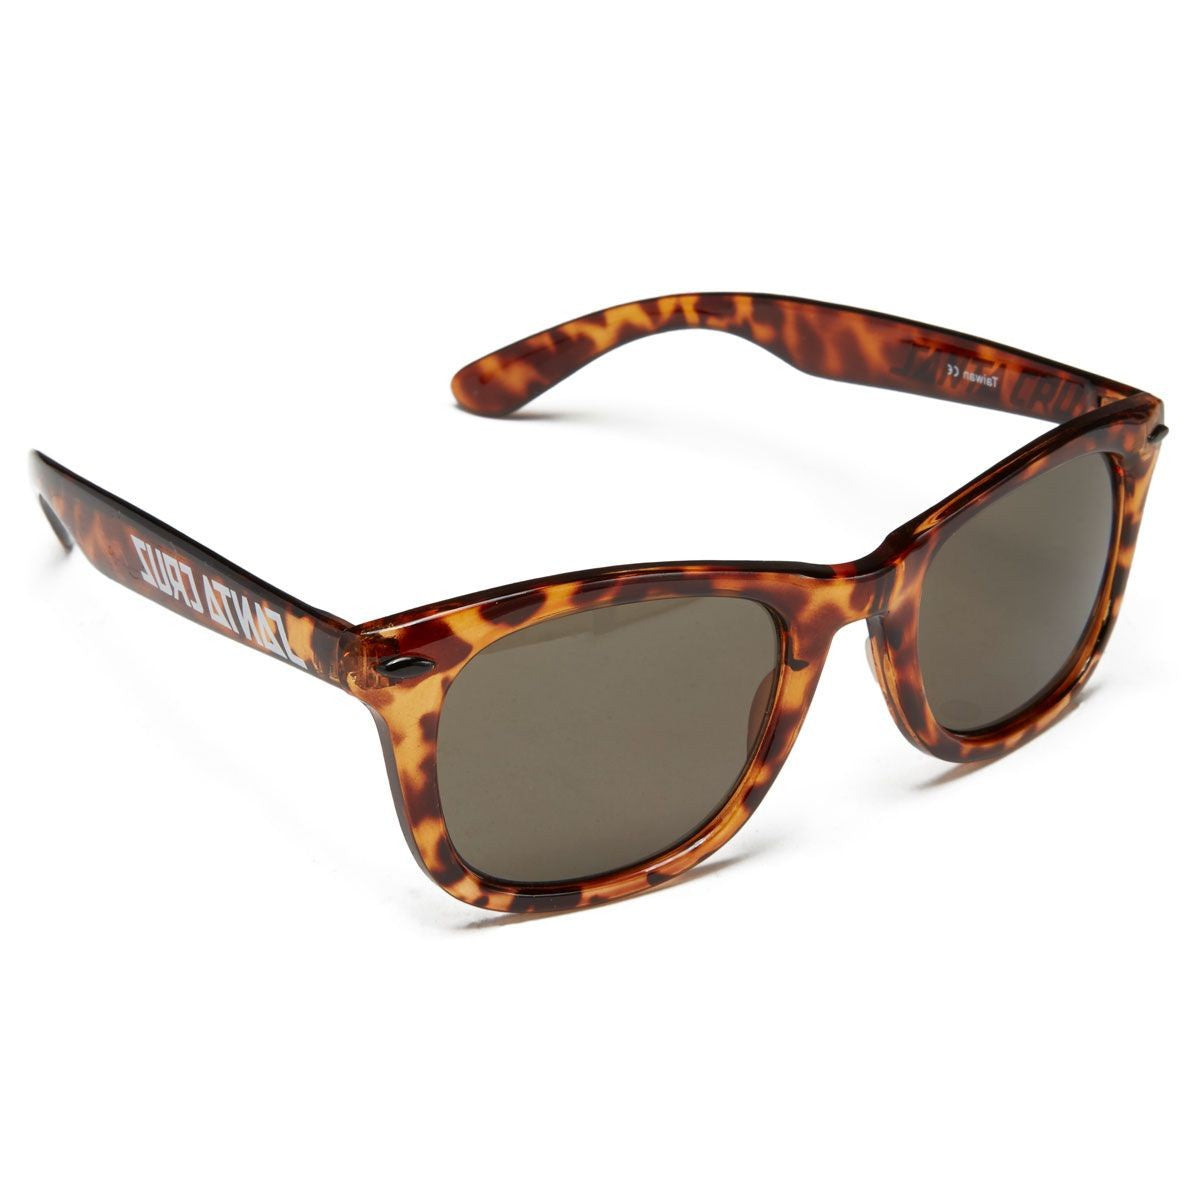 Santa Cruz Sunglasses